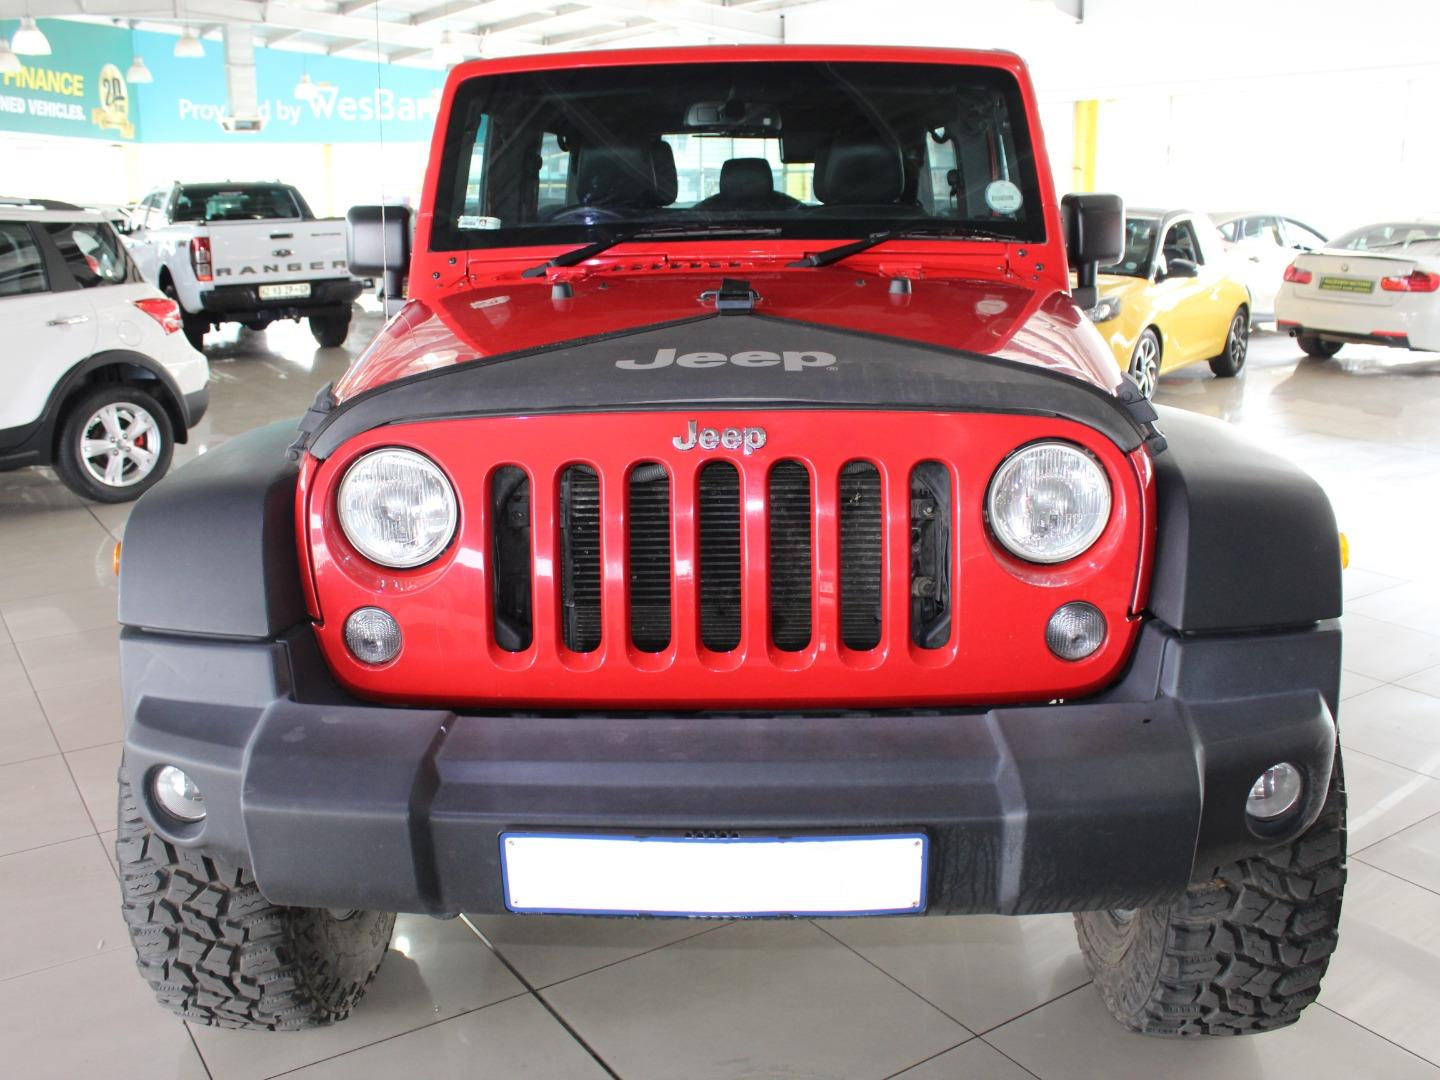 2016 Jeep Wrangler Unlimited 3.6L Rubicon- Picture 3